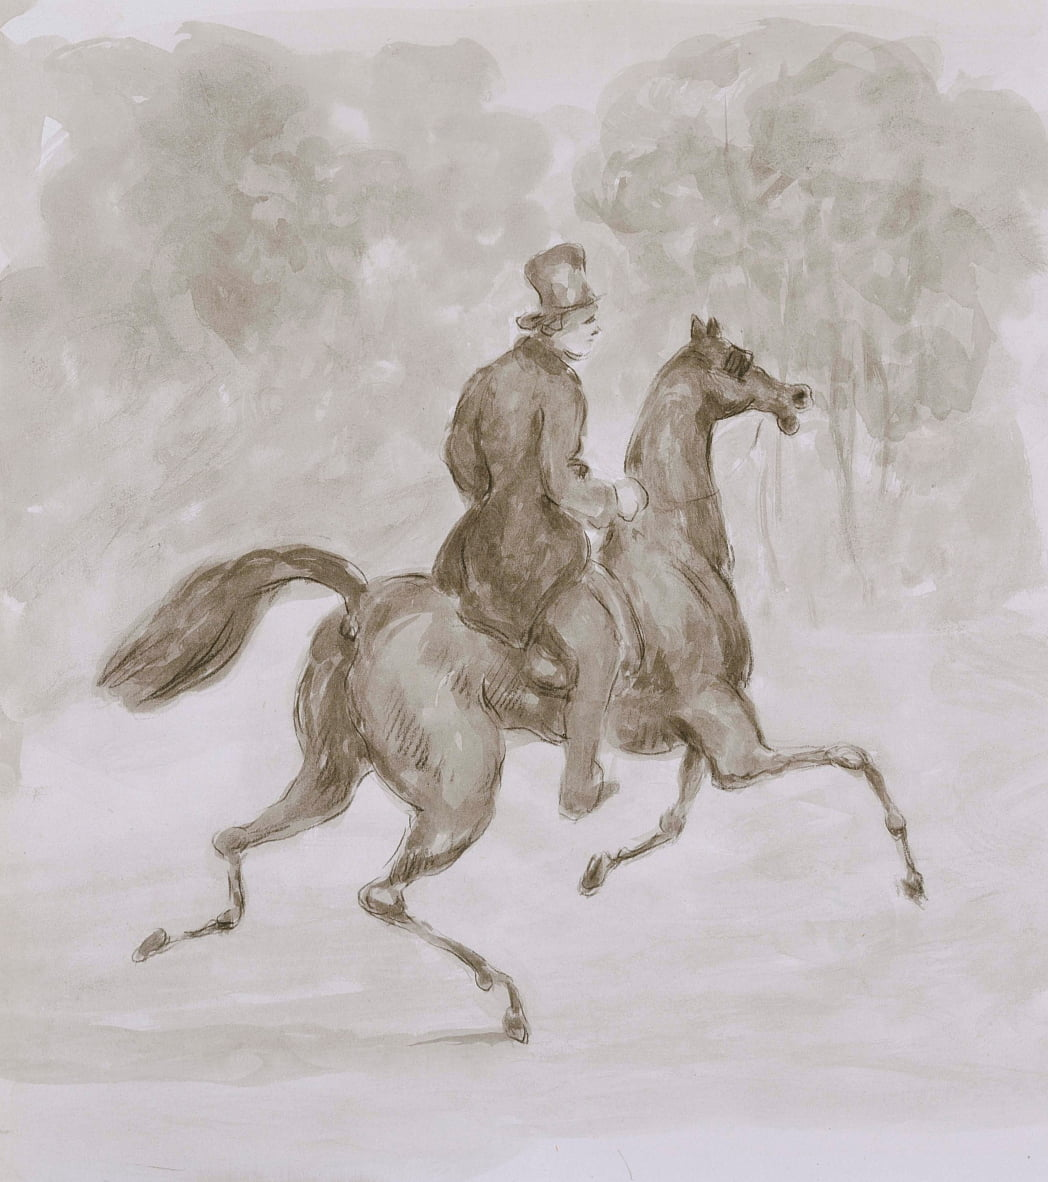 Man on Trotting Horse - Constantin Guys